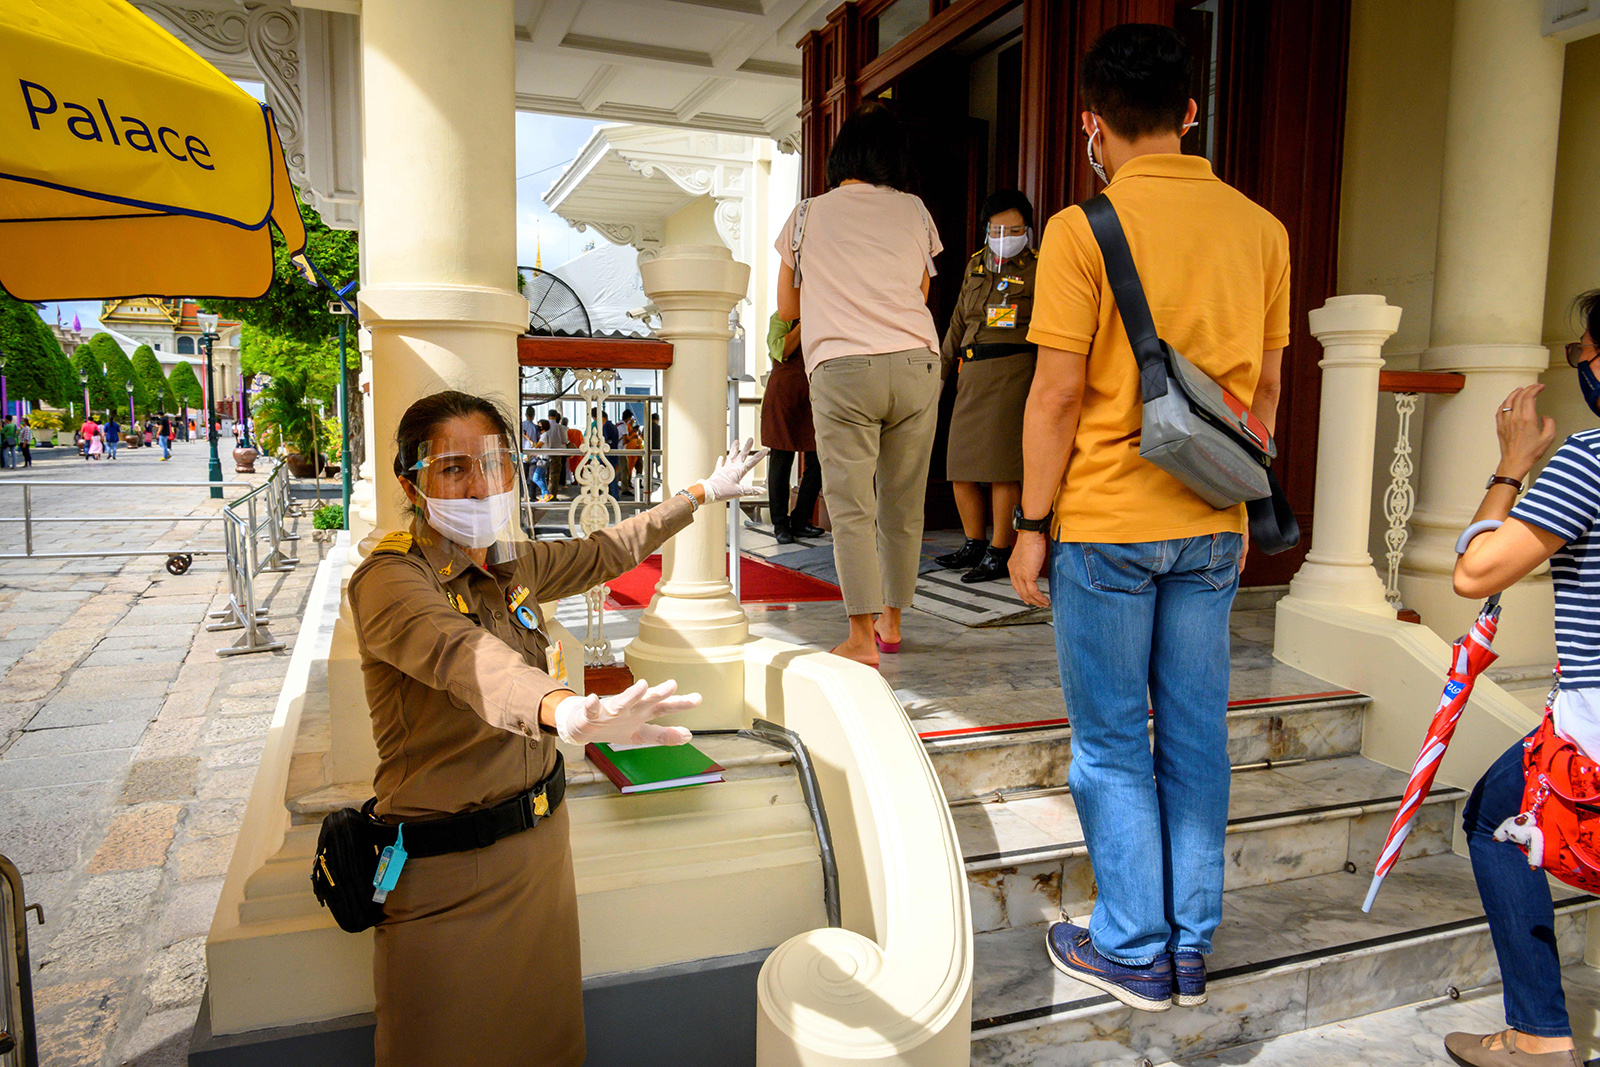 An officer enforces social distancing at the entrance of the Grand Palace in Bangkok on June 7, as it reopened for visitors following restrictions to halt the spread of Covid-19.